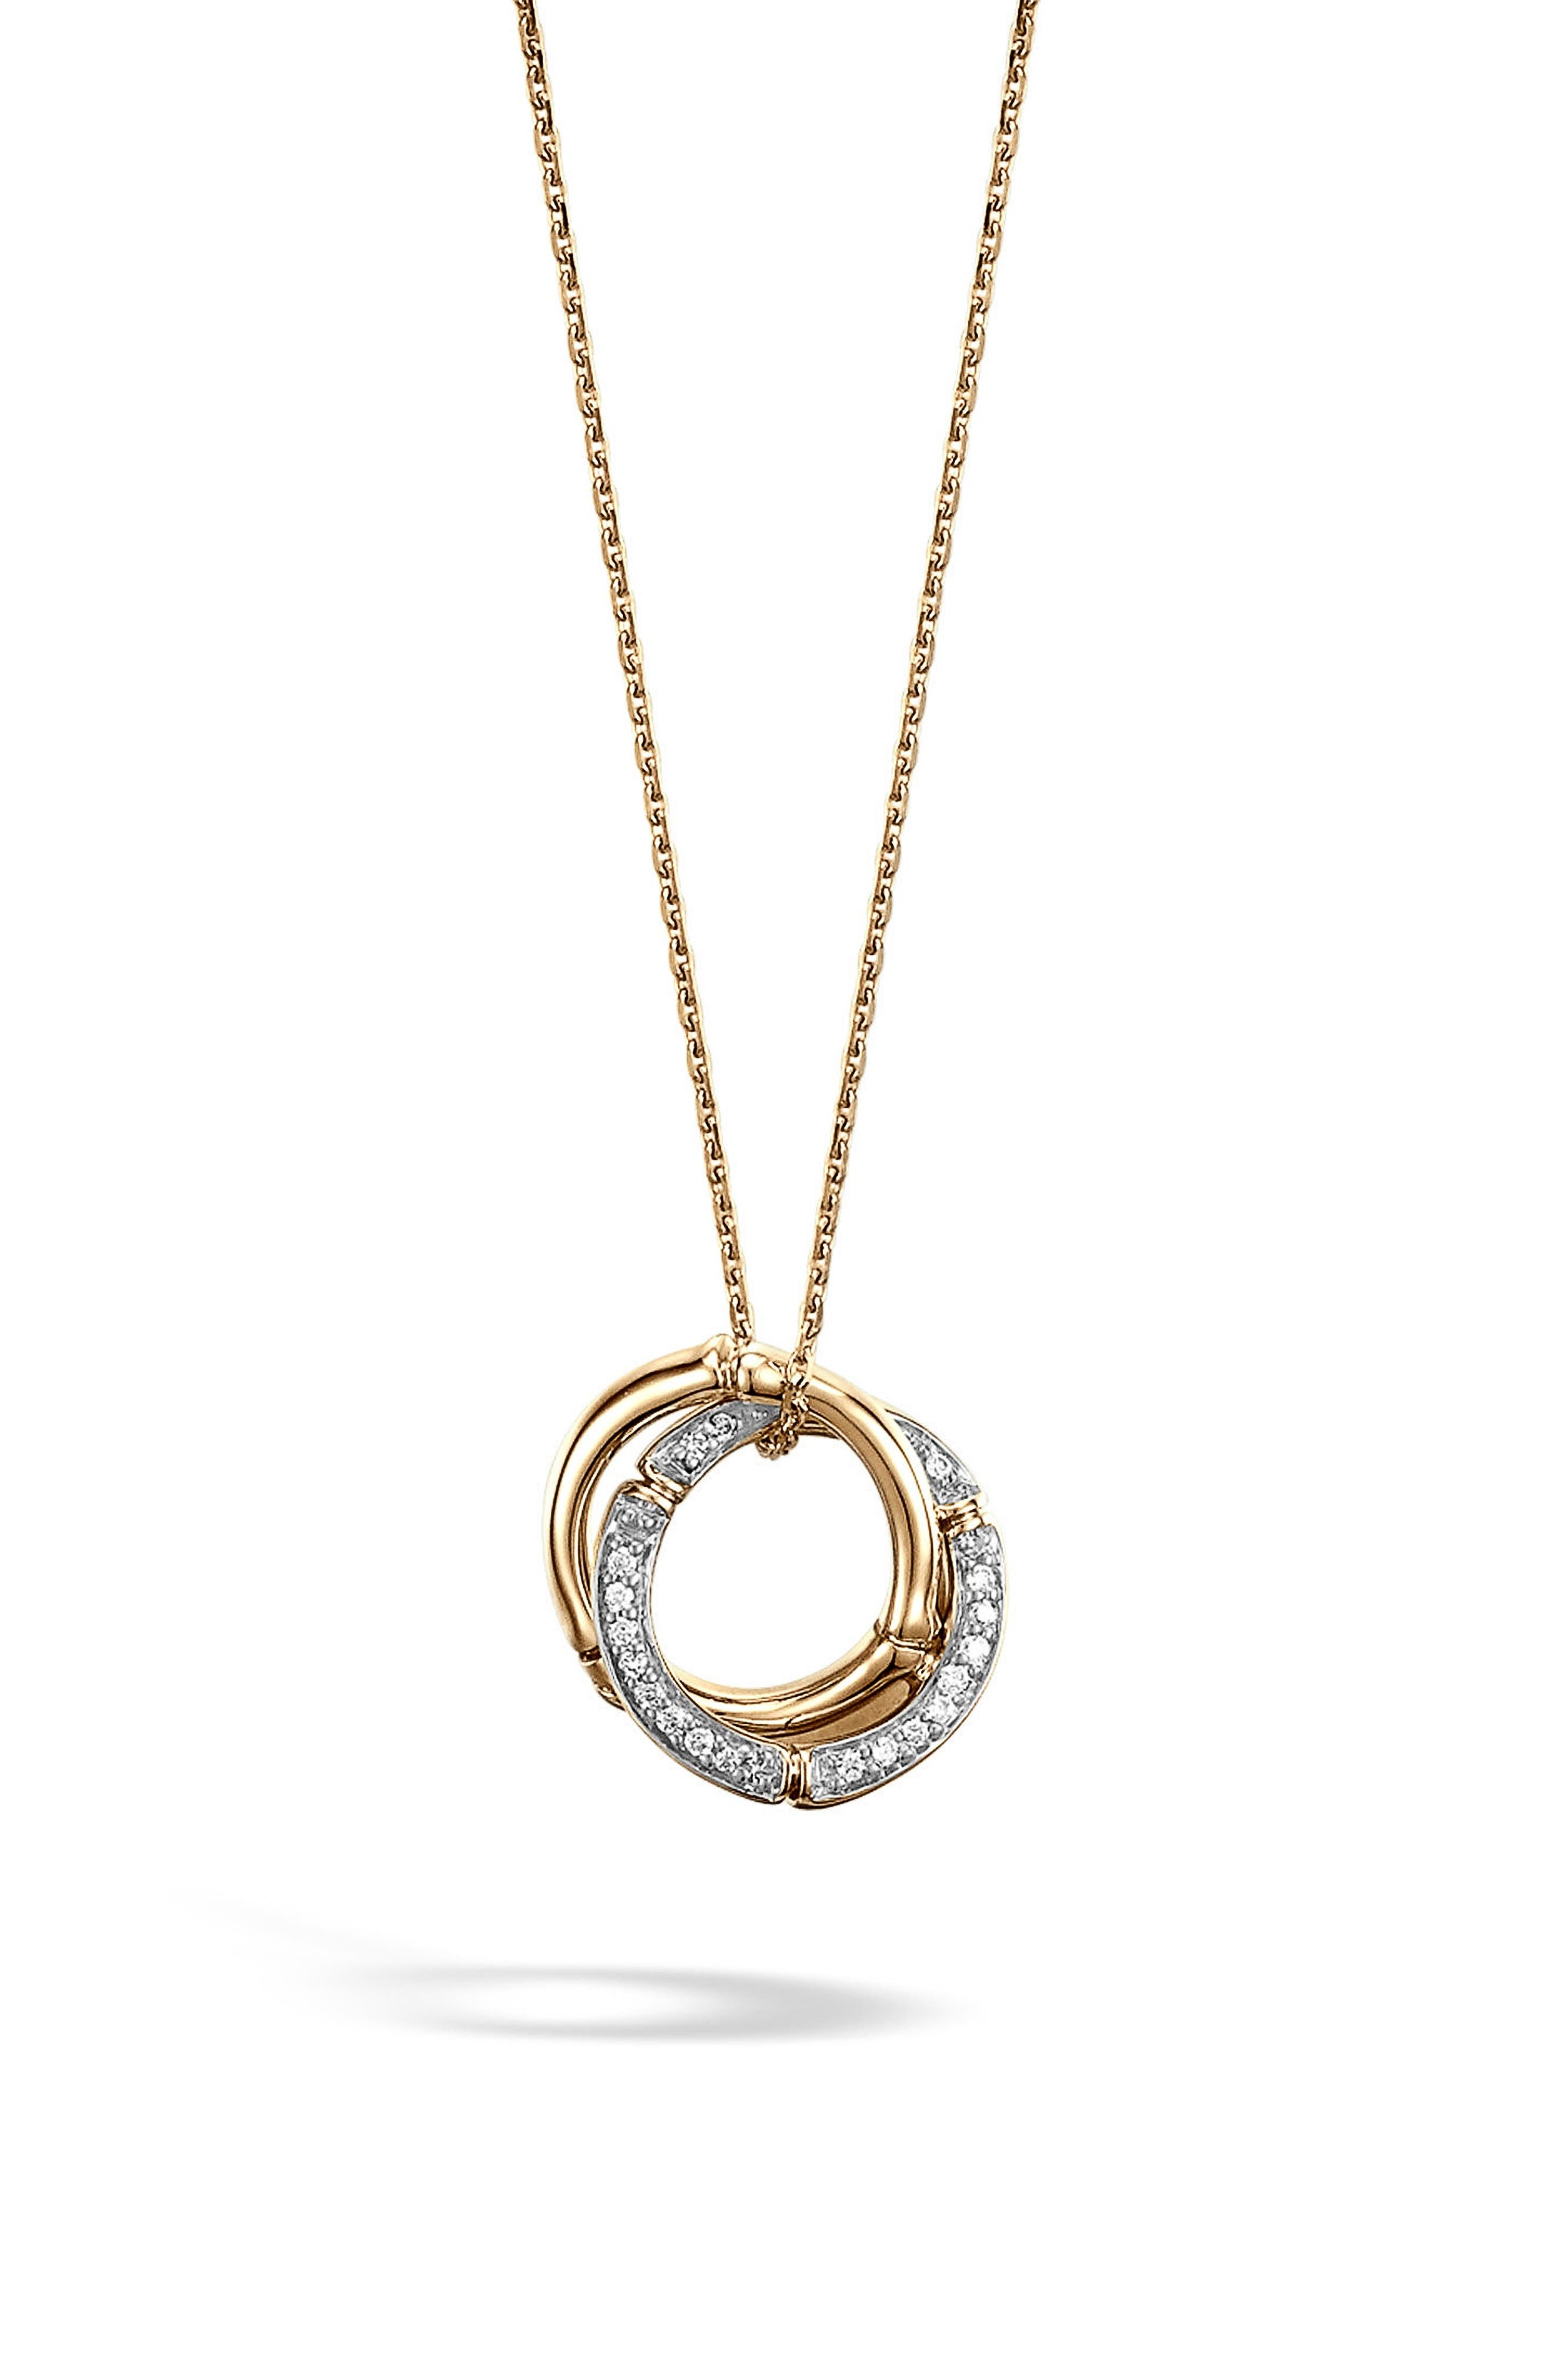 Alternate Image 1 Selected - John Hardy Bamboo Diamond & 18k Gold Pendant Necklace